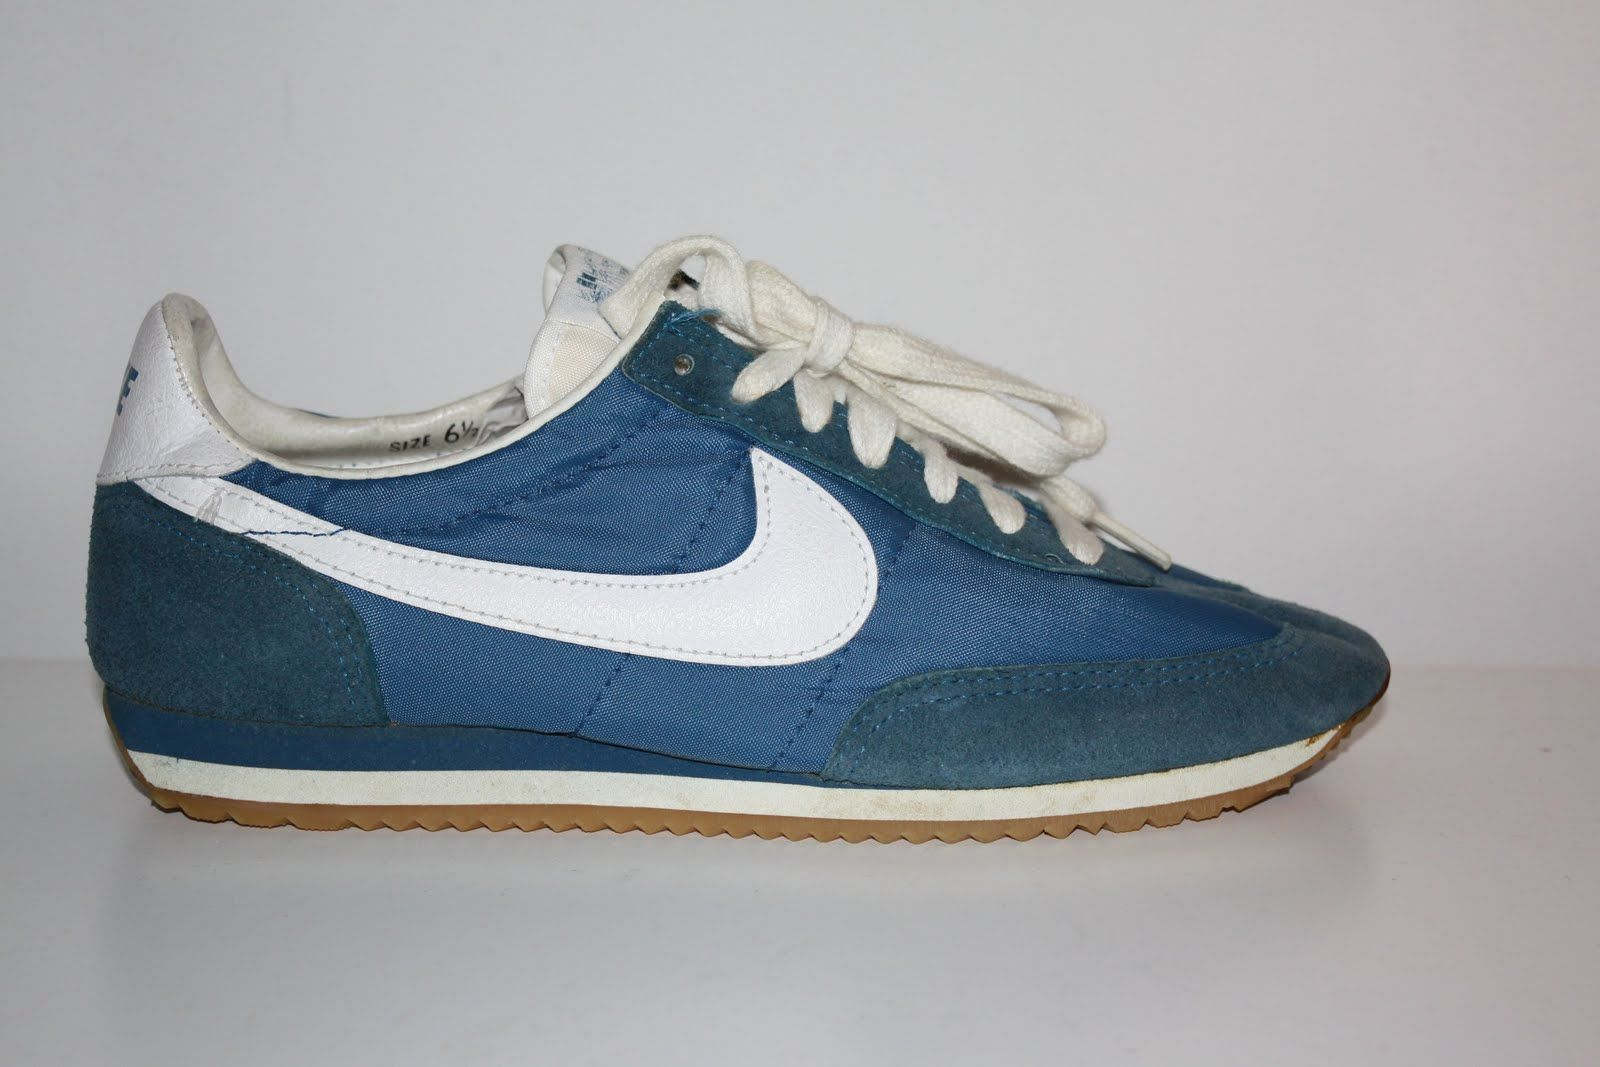 reputable site 68ac9 b07fc my vintage sneakers   Nike Oceania (1983)